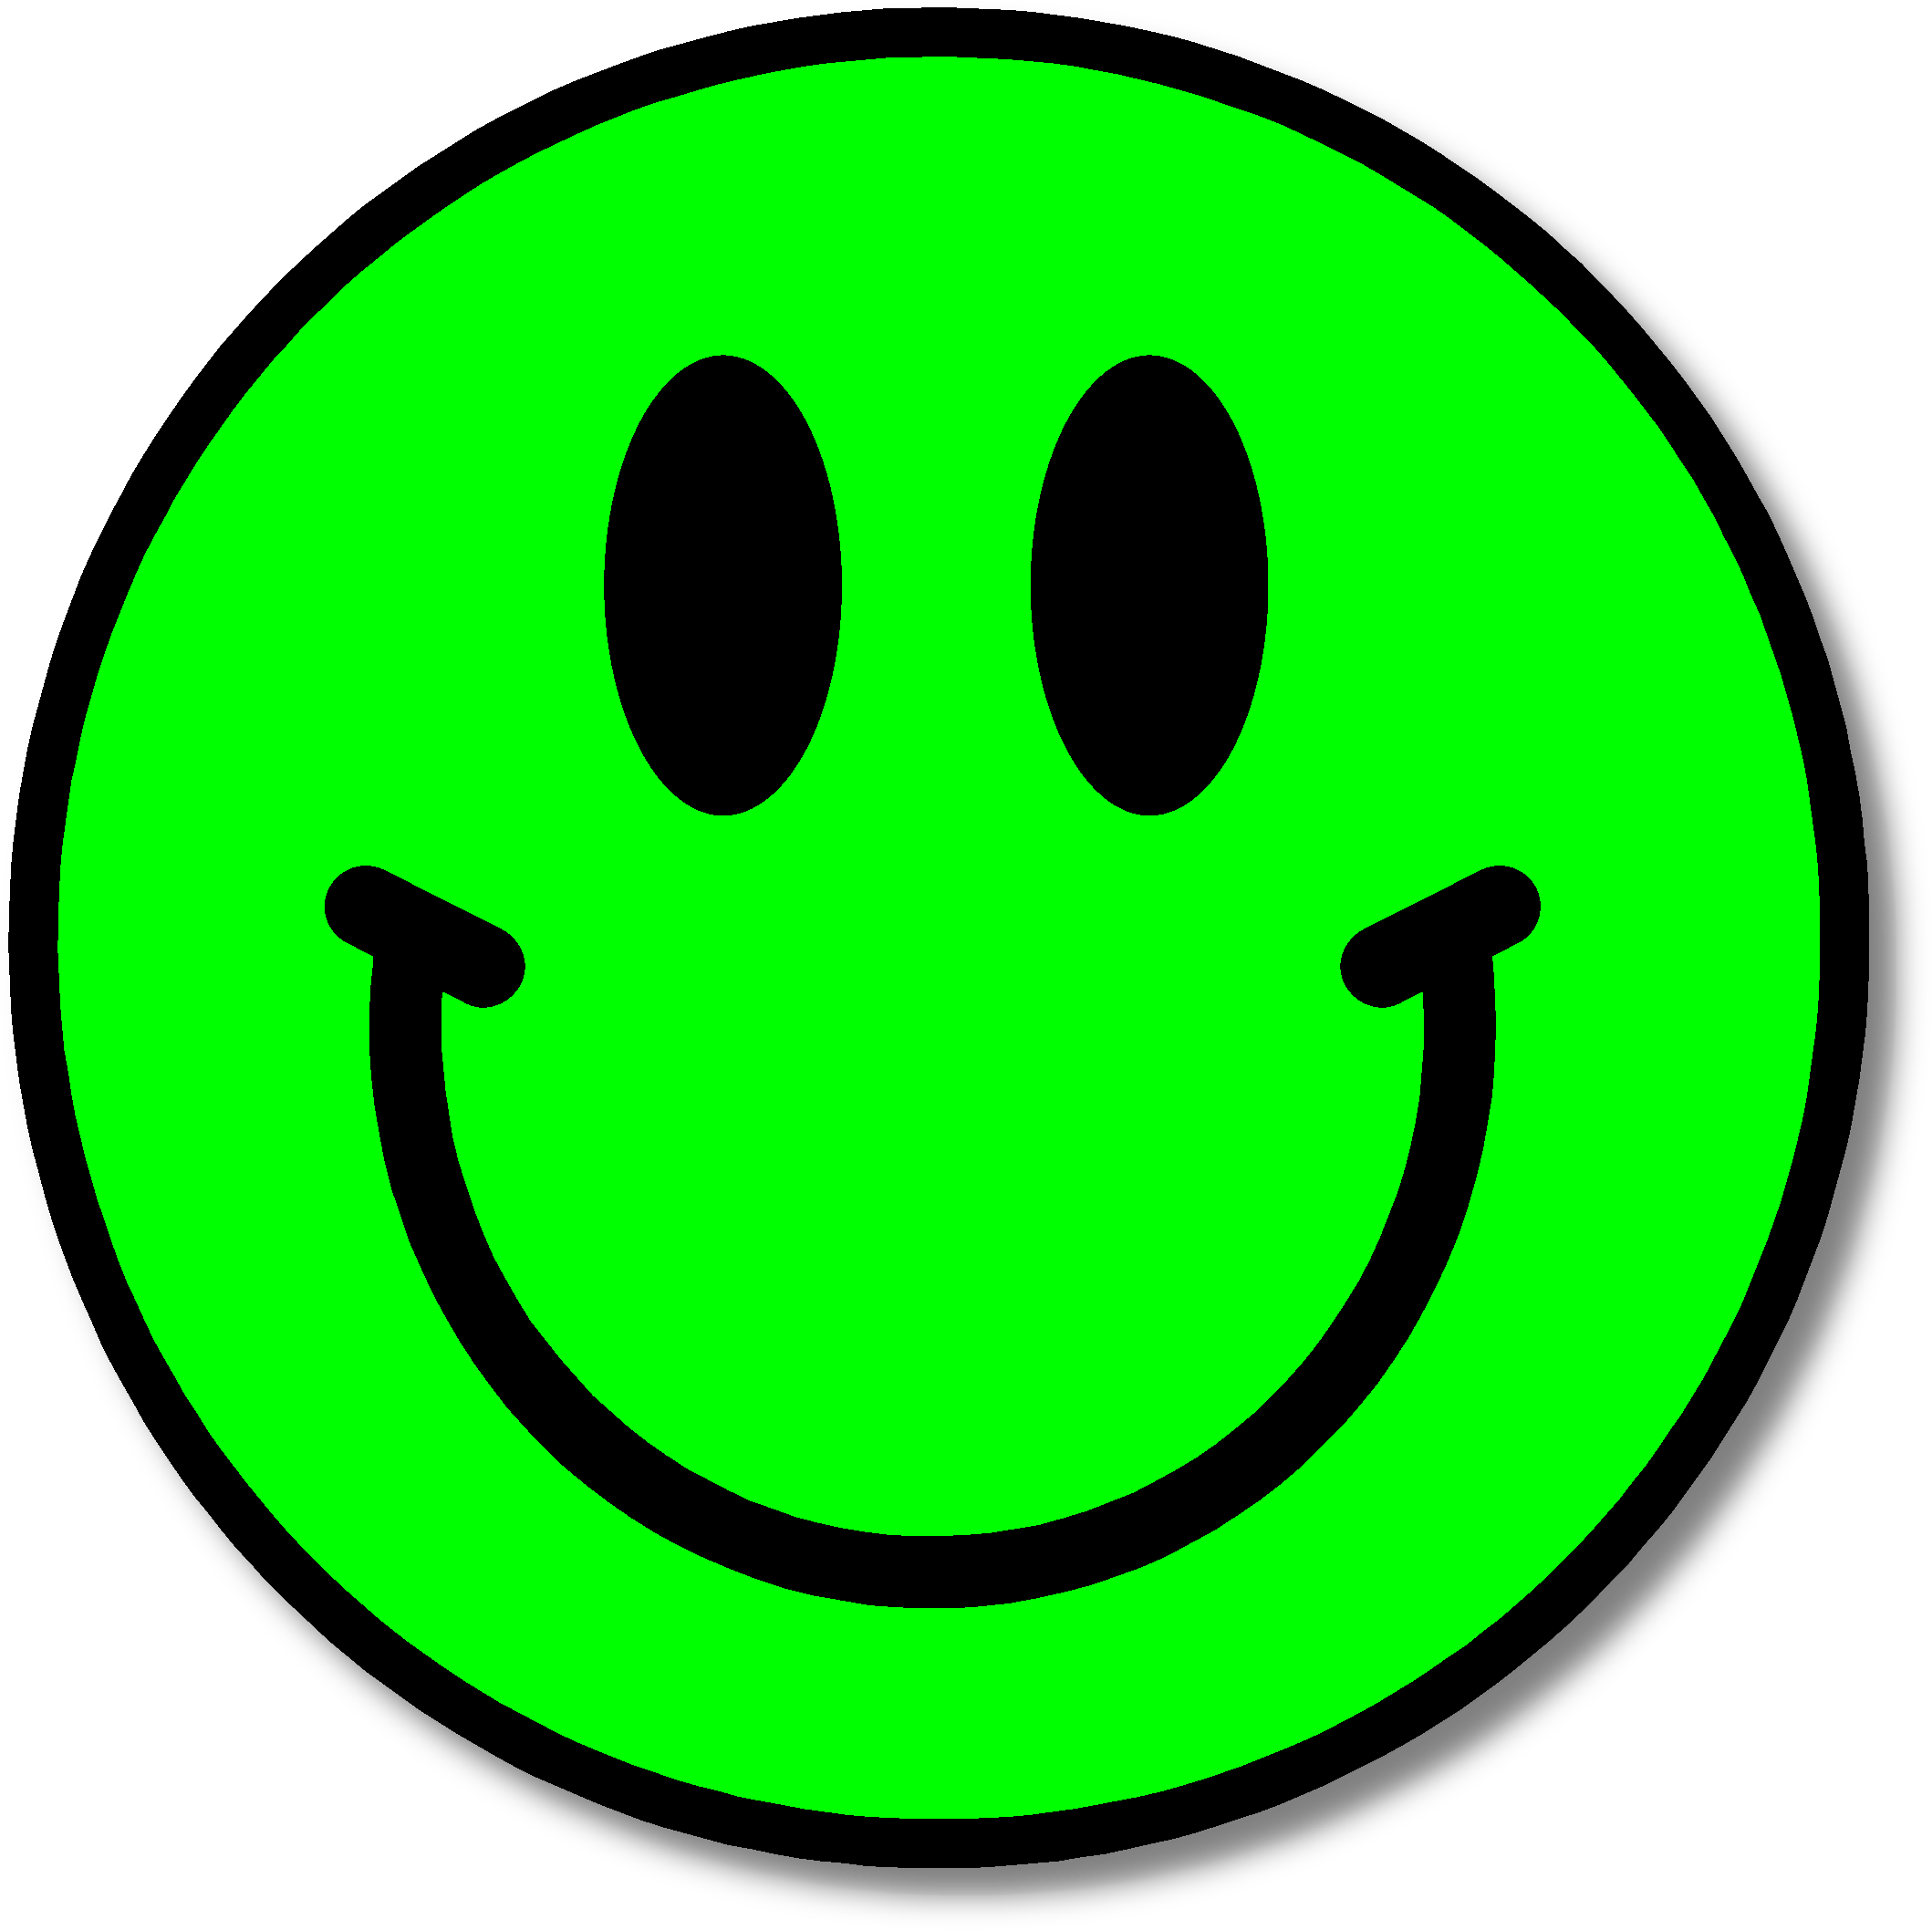 2118x2116 This Smiley Face Is For The Symbol Of Project Mayhem. There Was